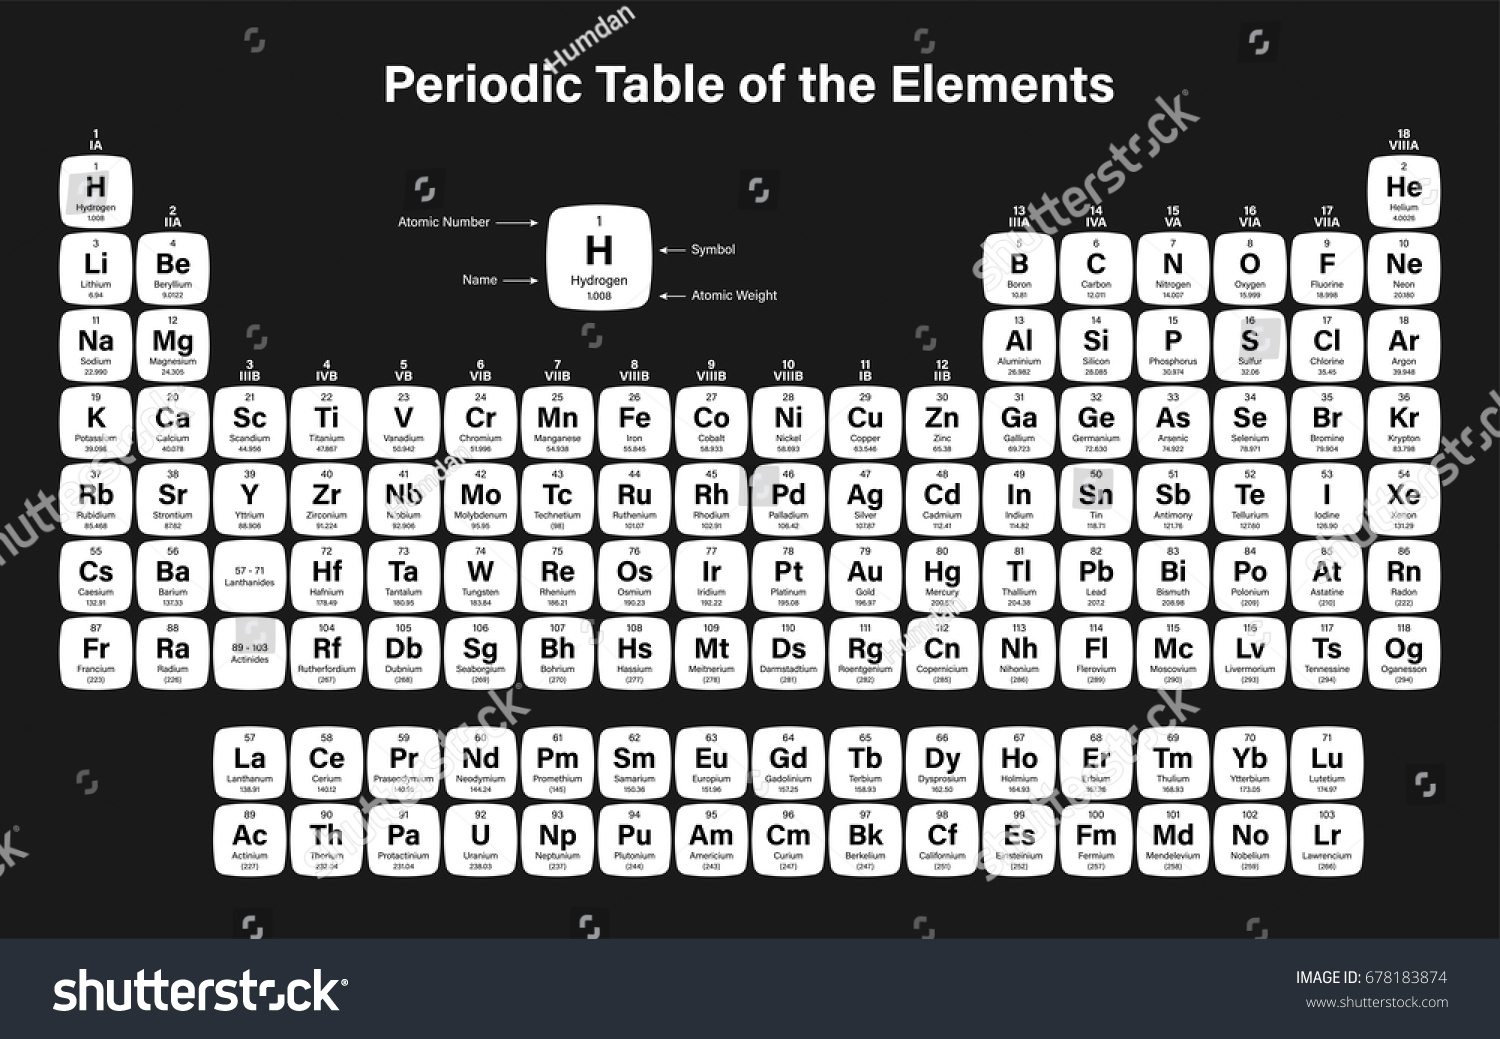 Periodic table elements vector illustration shows stock vector periodic table of the elements vector illustration shows atomic number symbol name and gamestrikefo Images